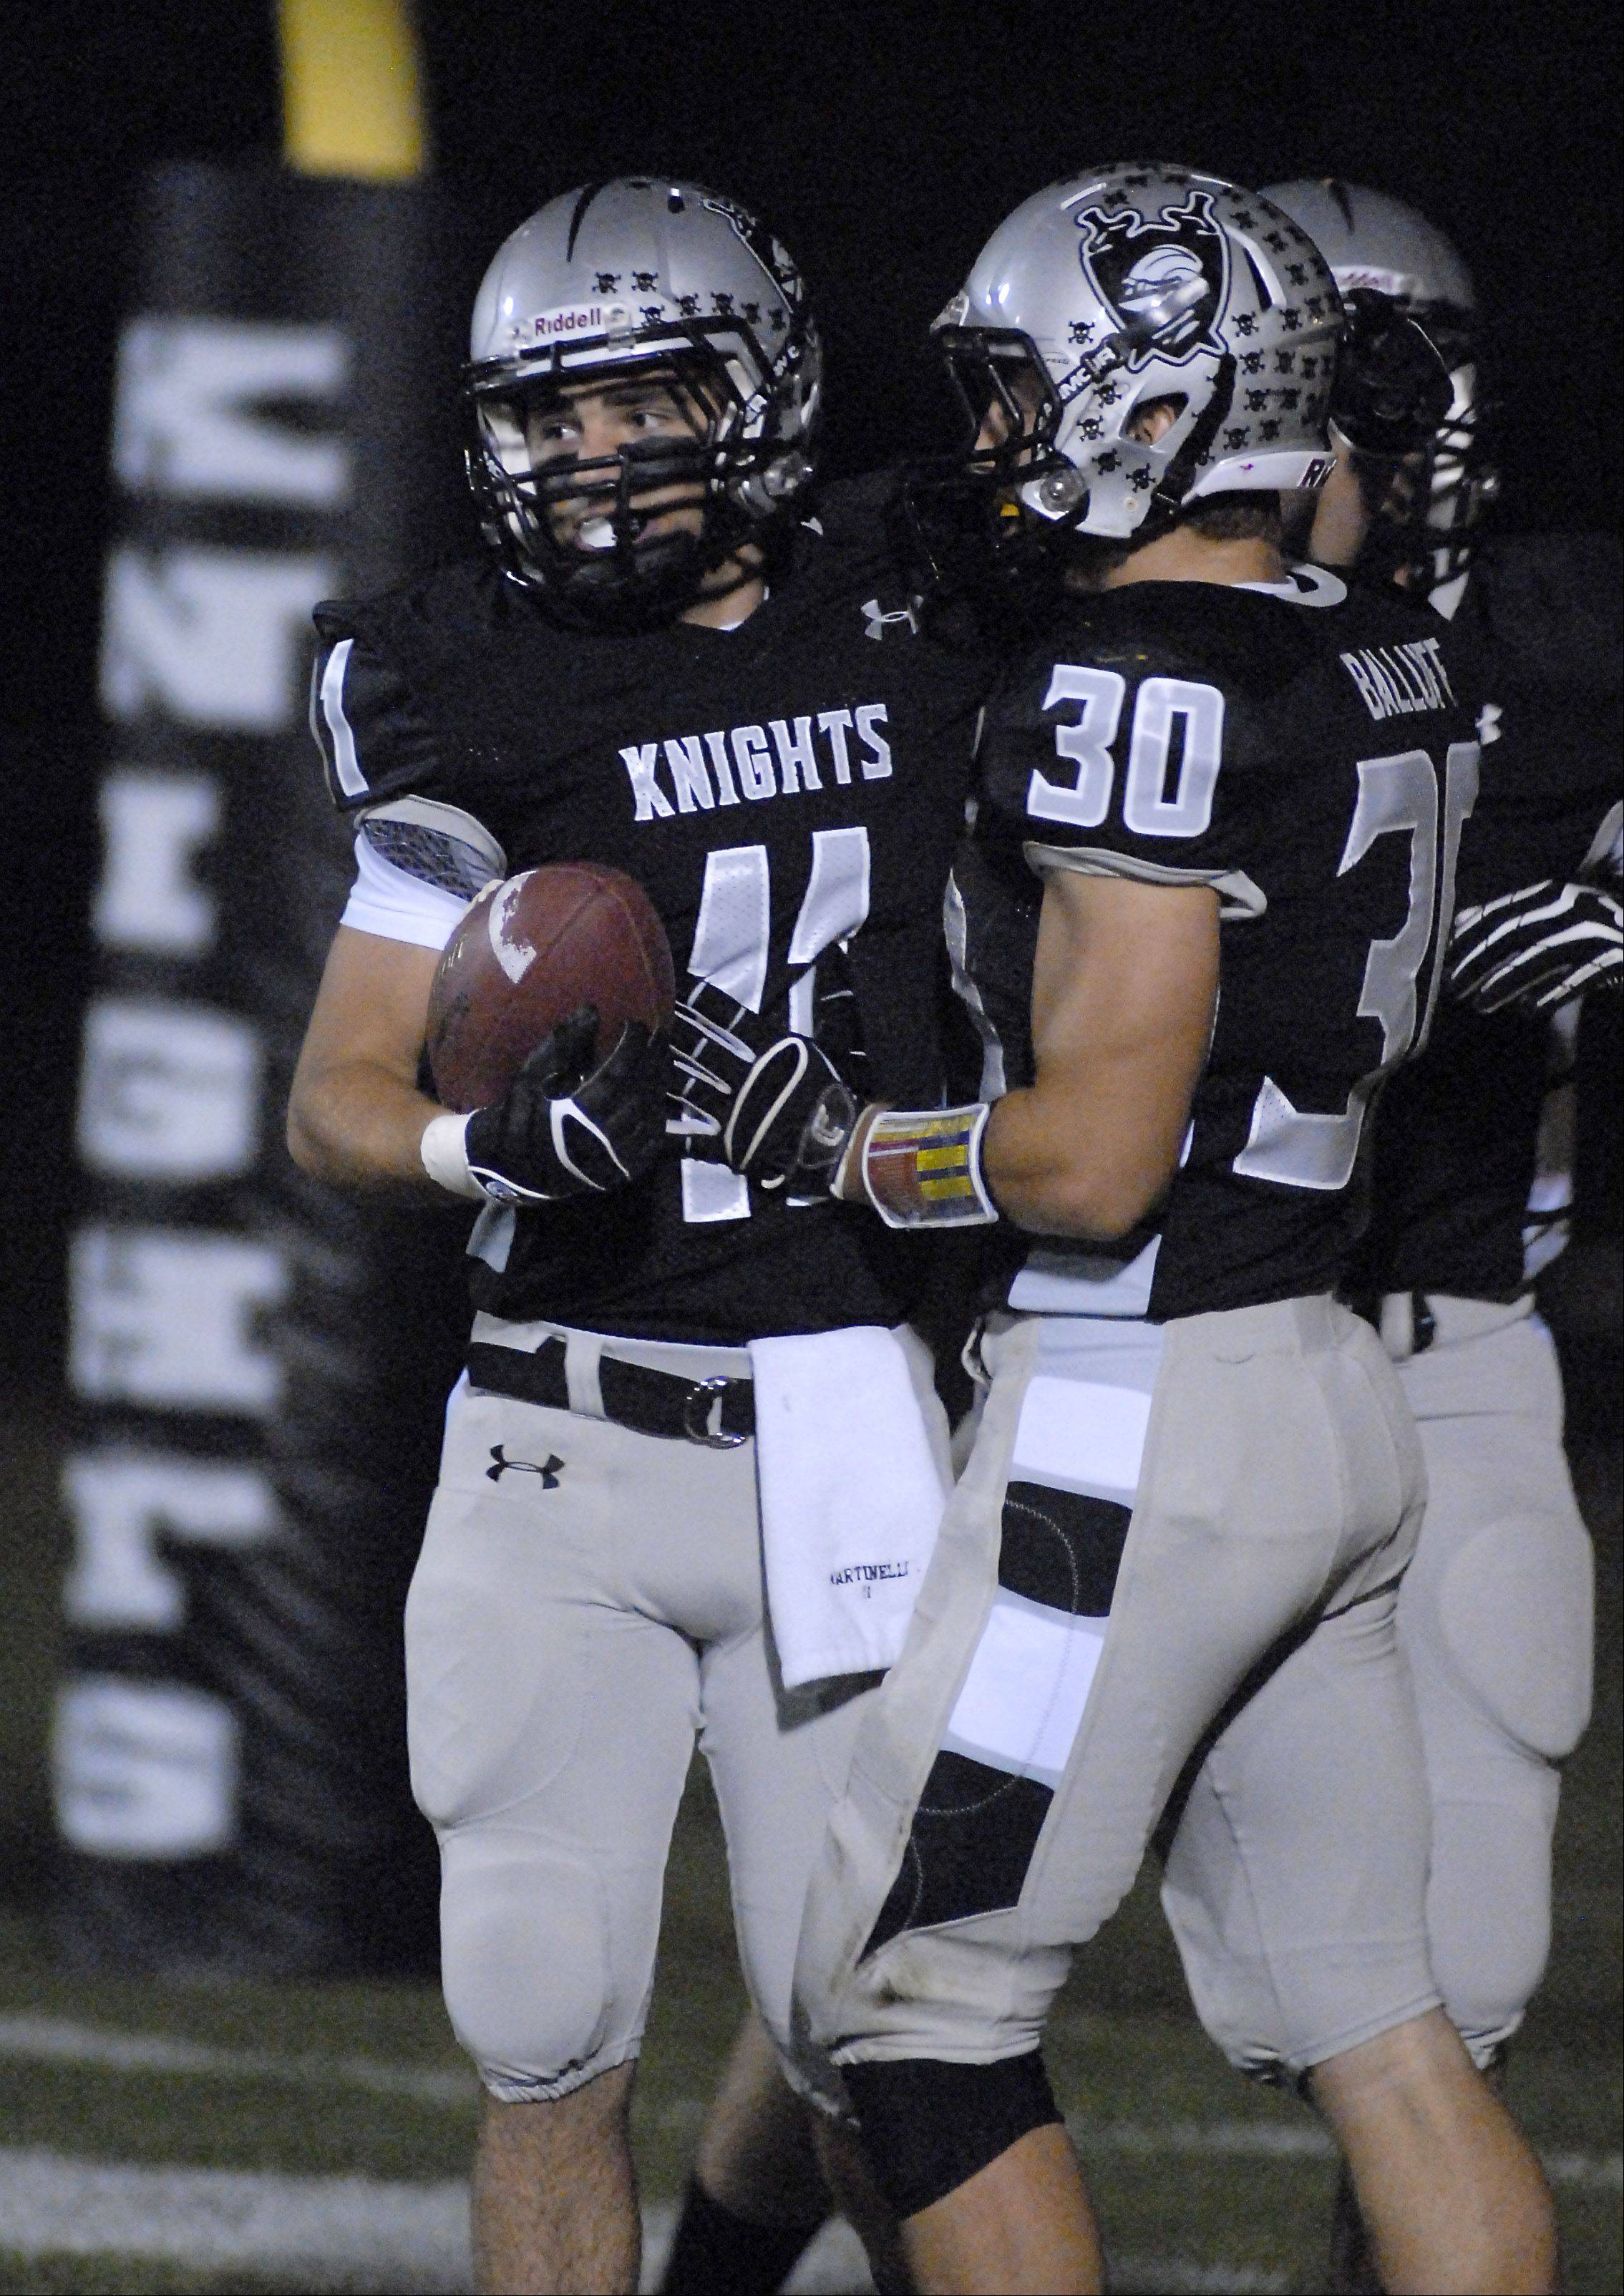 Kaneland's Zack Martinelli gets props from teammate Jesse Balluff after a touchdown.